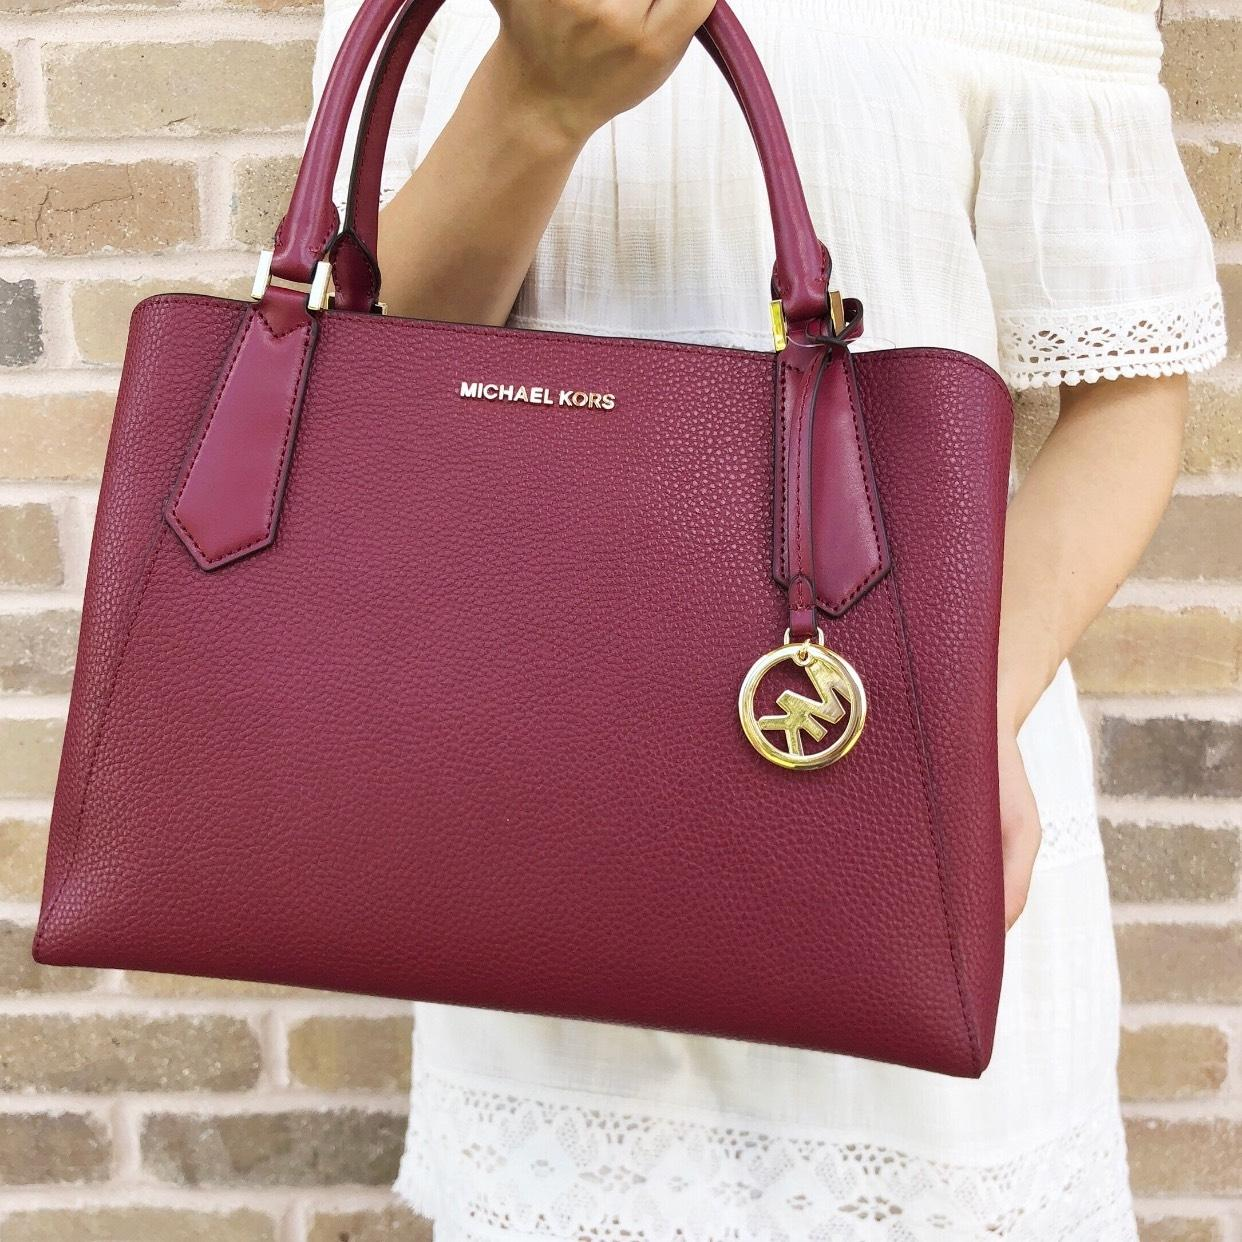 7faf68460667 ... tote 0edf7 417b0  shopping michael kors kimberly large east west  mulberry leather satchel tradesy 2c835 543a6